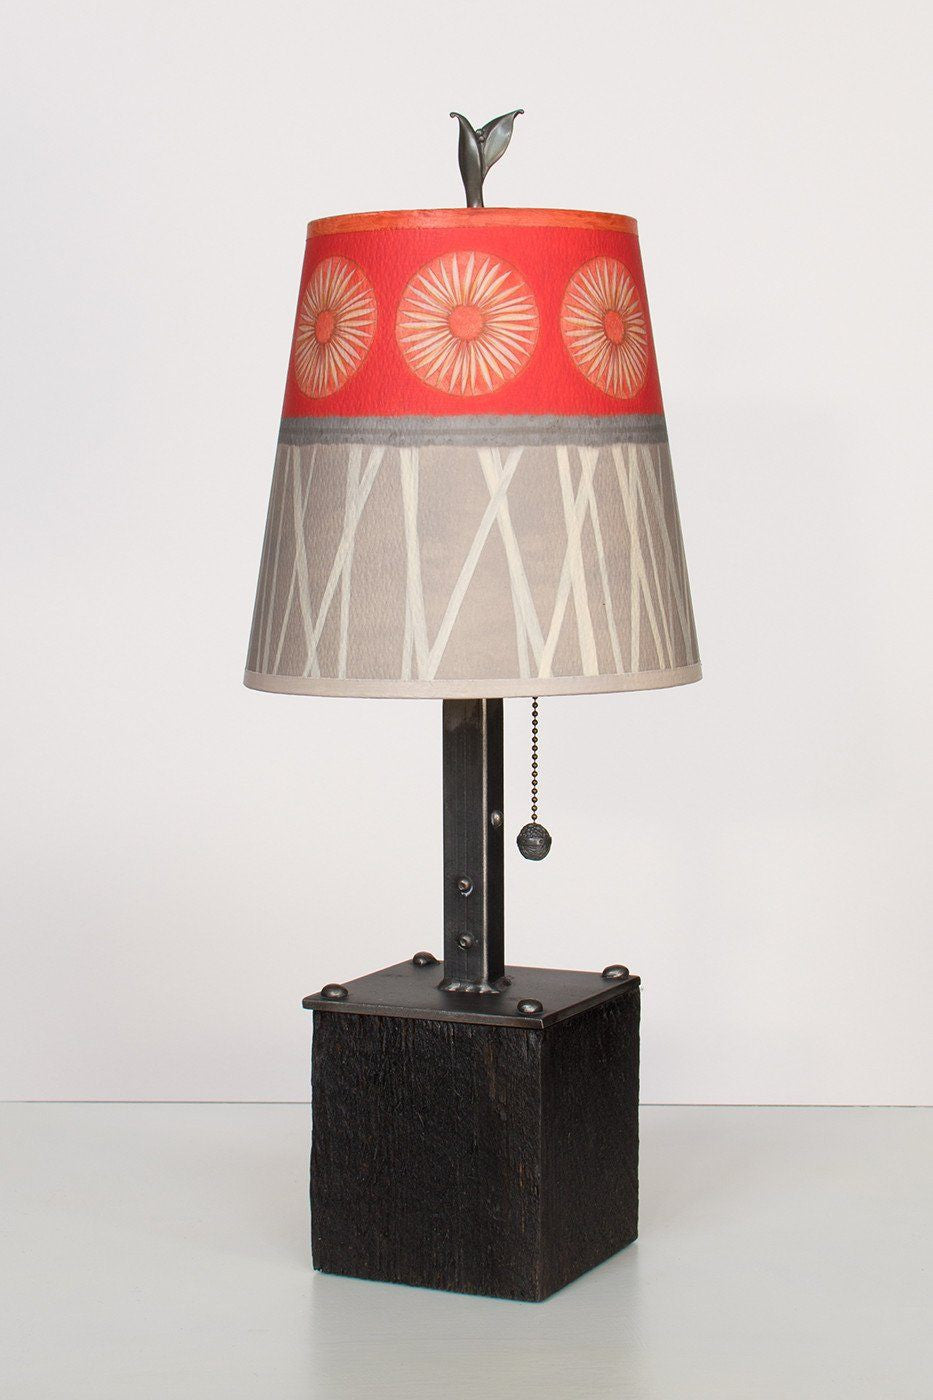 Steel Table Lamp on Reclaimed Wood with Small Drum Shade in Tang Lit